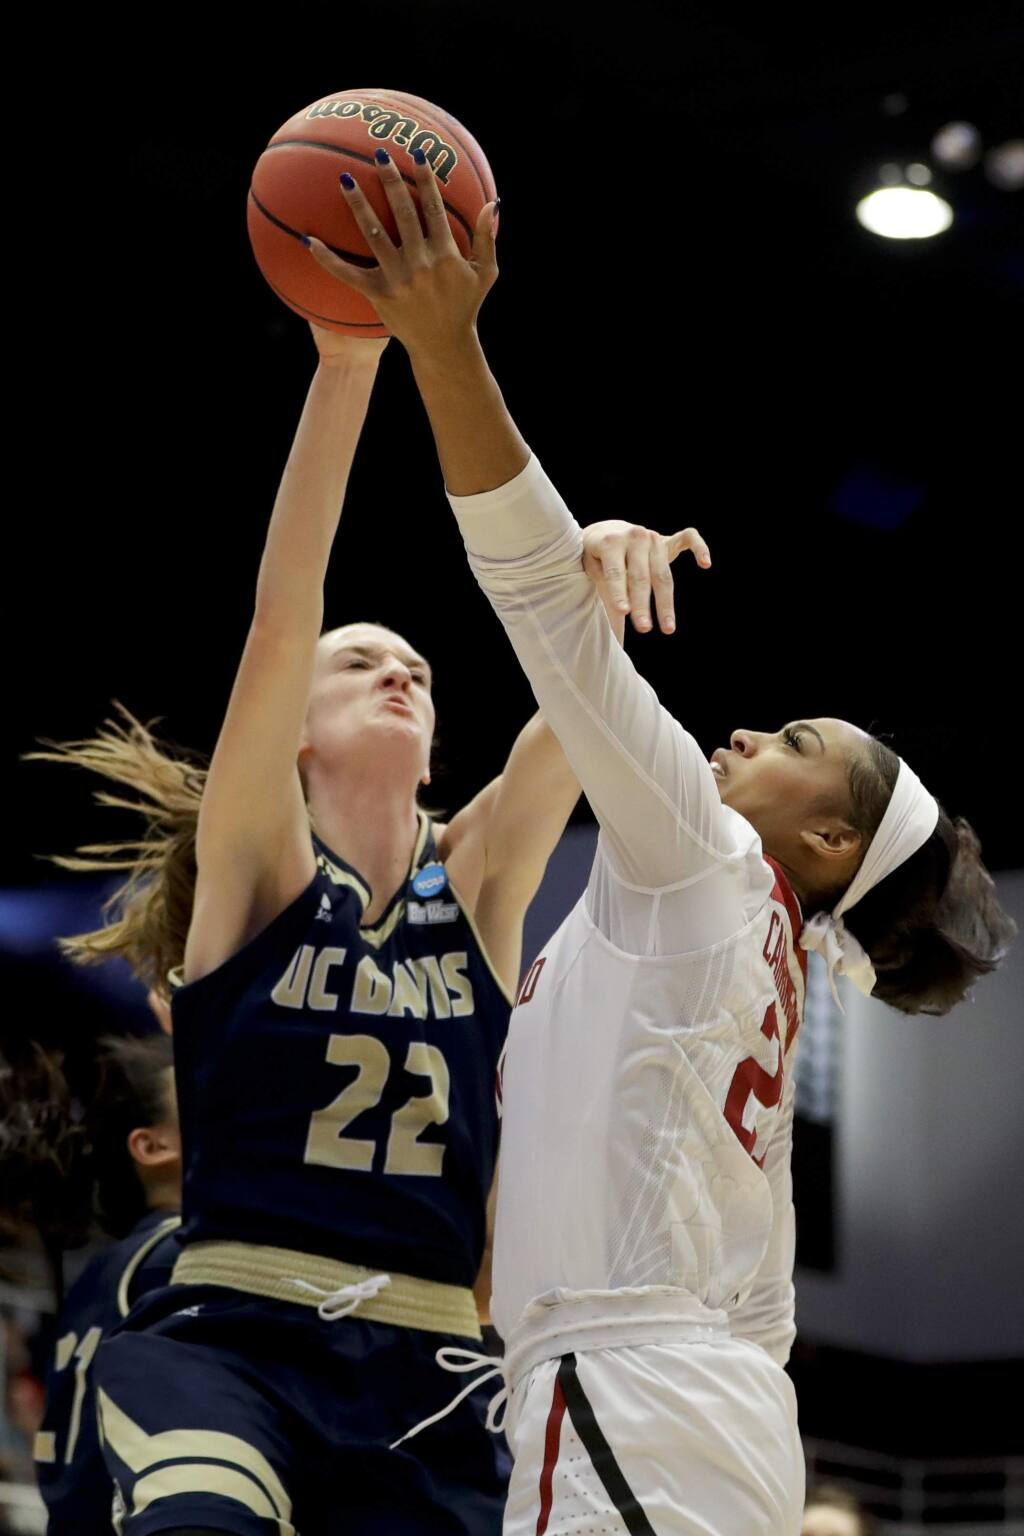 UC Davis forward Morgan Bertsch, let, blocks a shot by Stanford guard Kiana Williams during the first half of a first-round game in the NCAA women's college basketball tournament in Stanford, Calif. Saturday, March 23, 2019. (AP Photo/Chris Carlson)